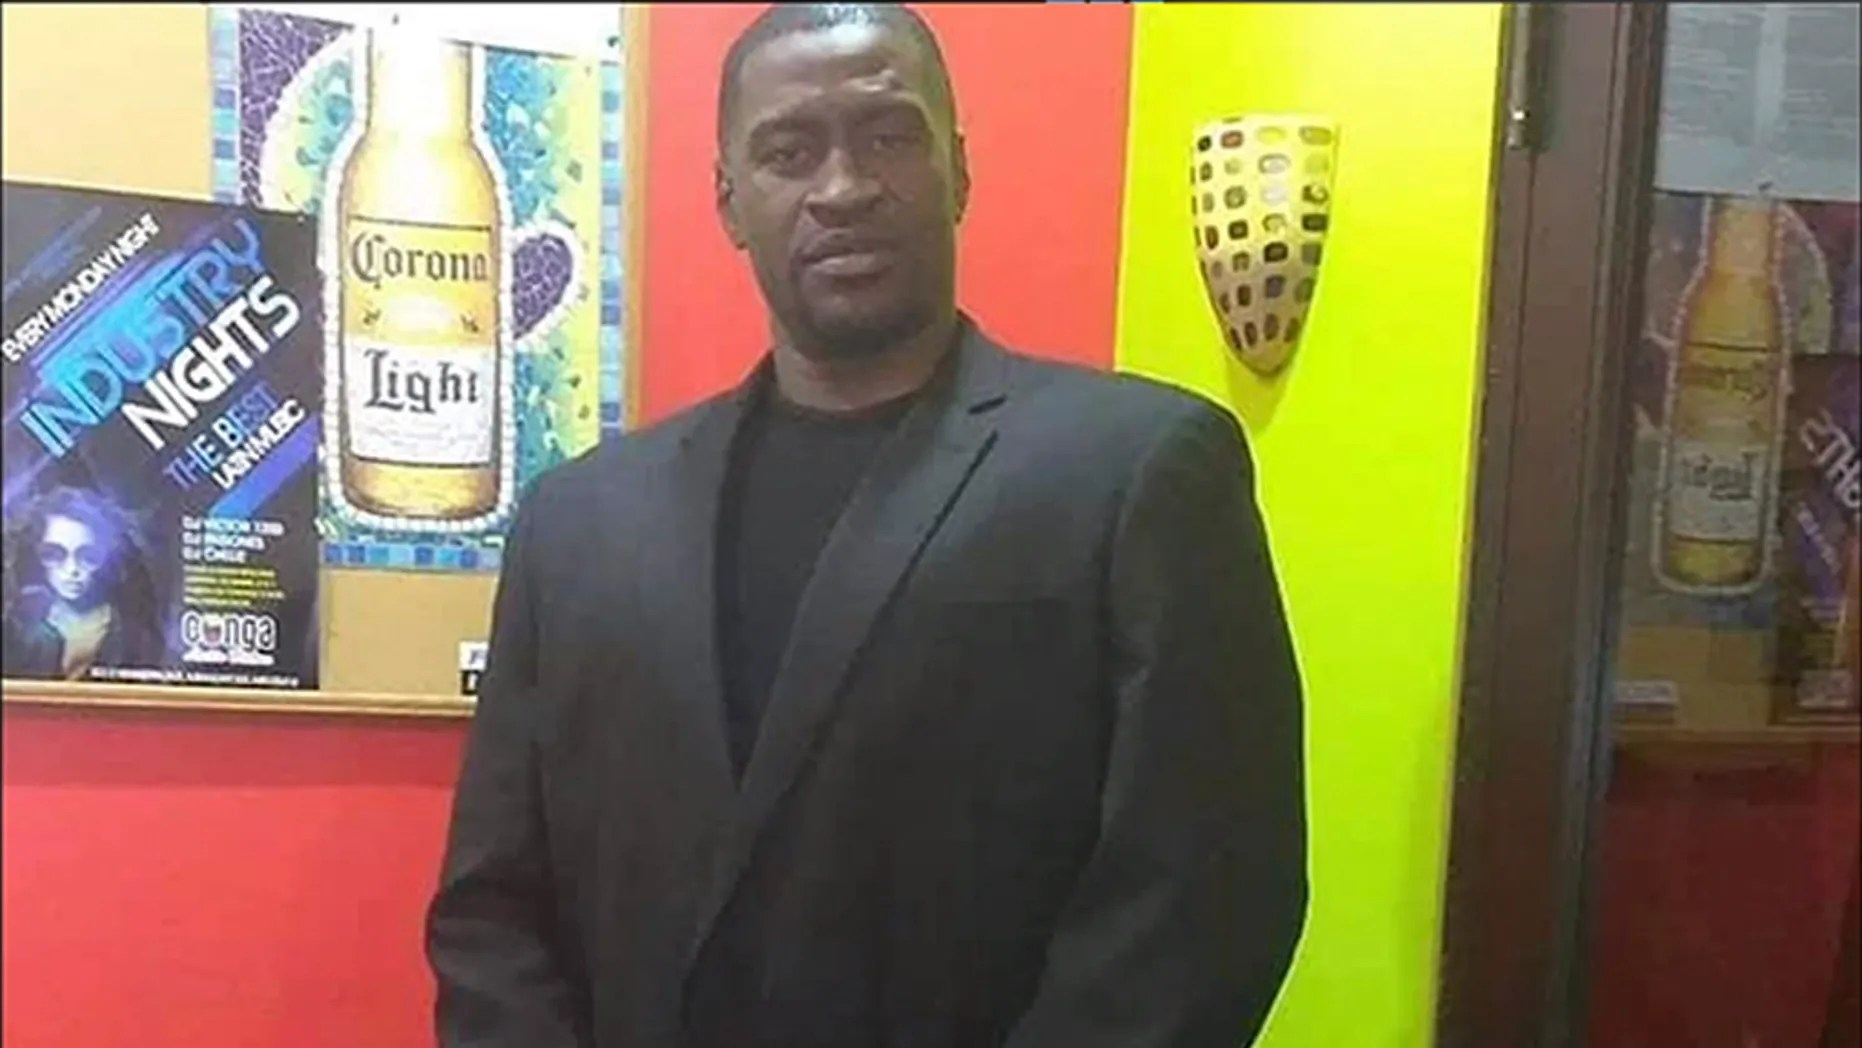 George Floyd died Monday after being detained by Minneapolis police officers. (Courtesy: Benjamin Crump via TMX.news)